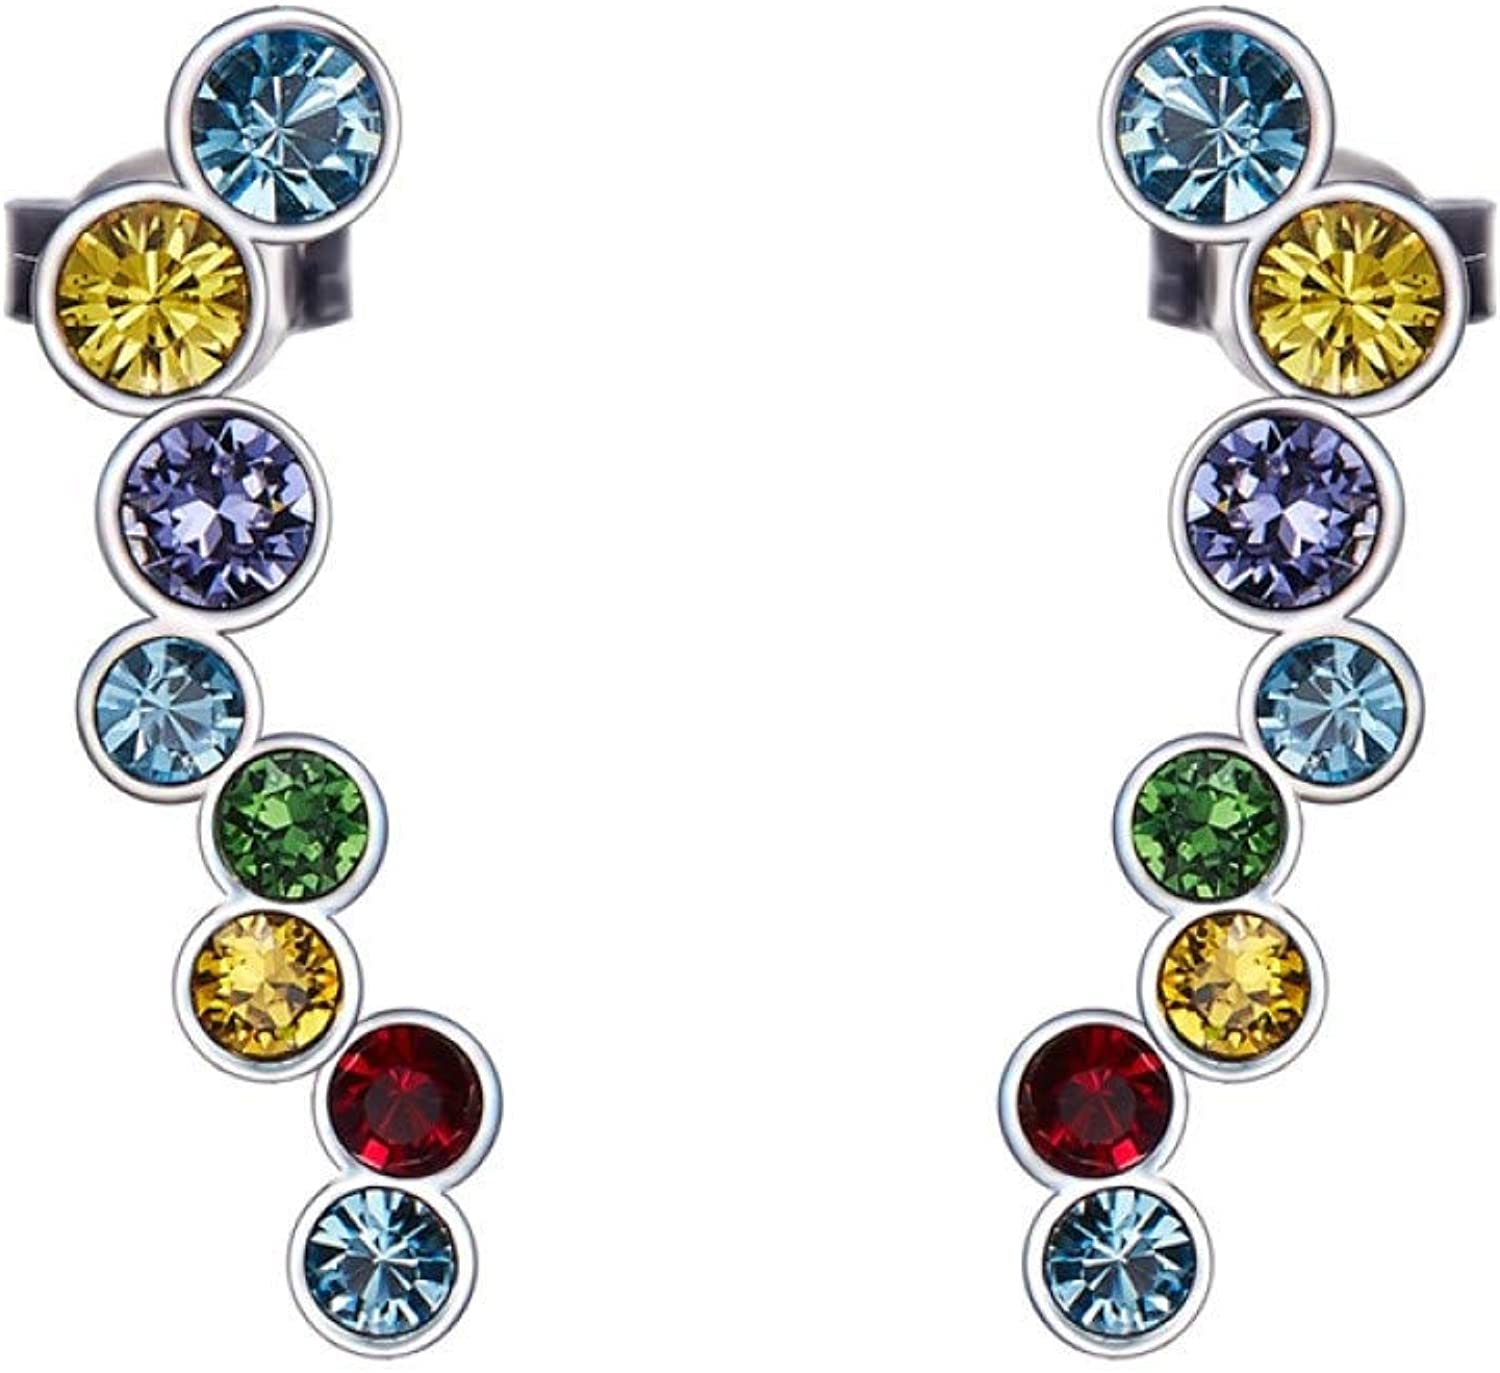 IUTING Crystals from Ear Cuff Silver Clip Earrings for Women Wedding Party Piercing